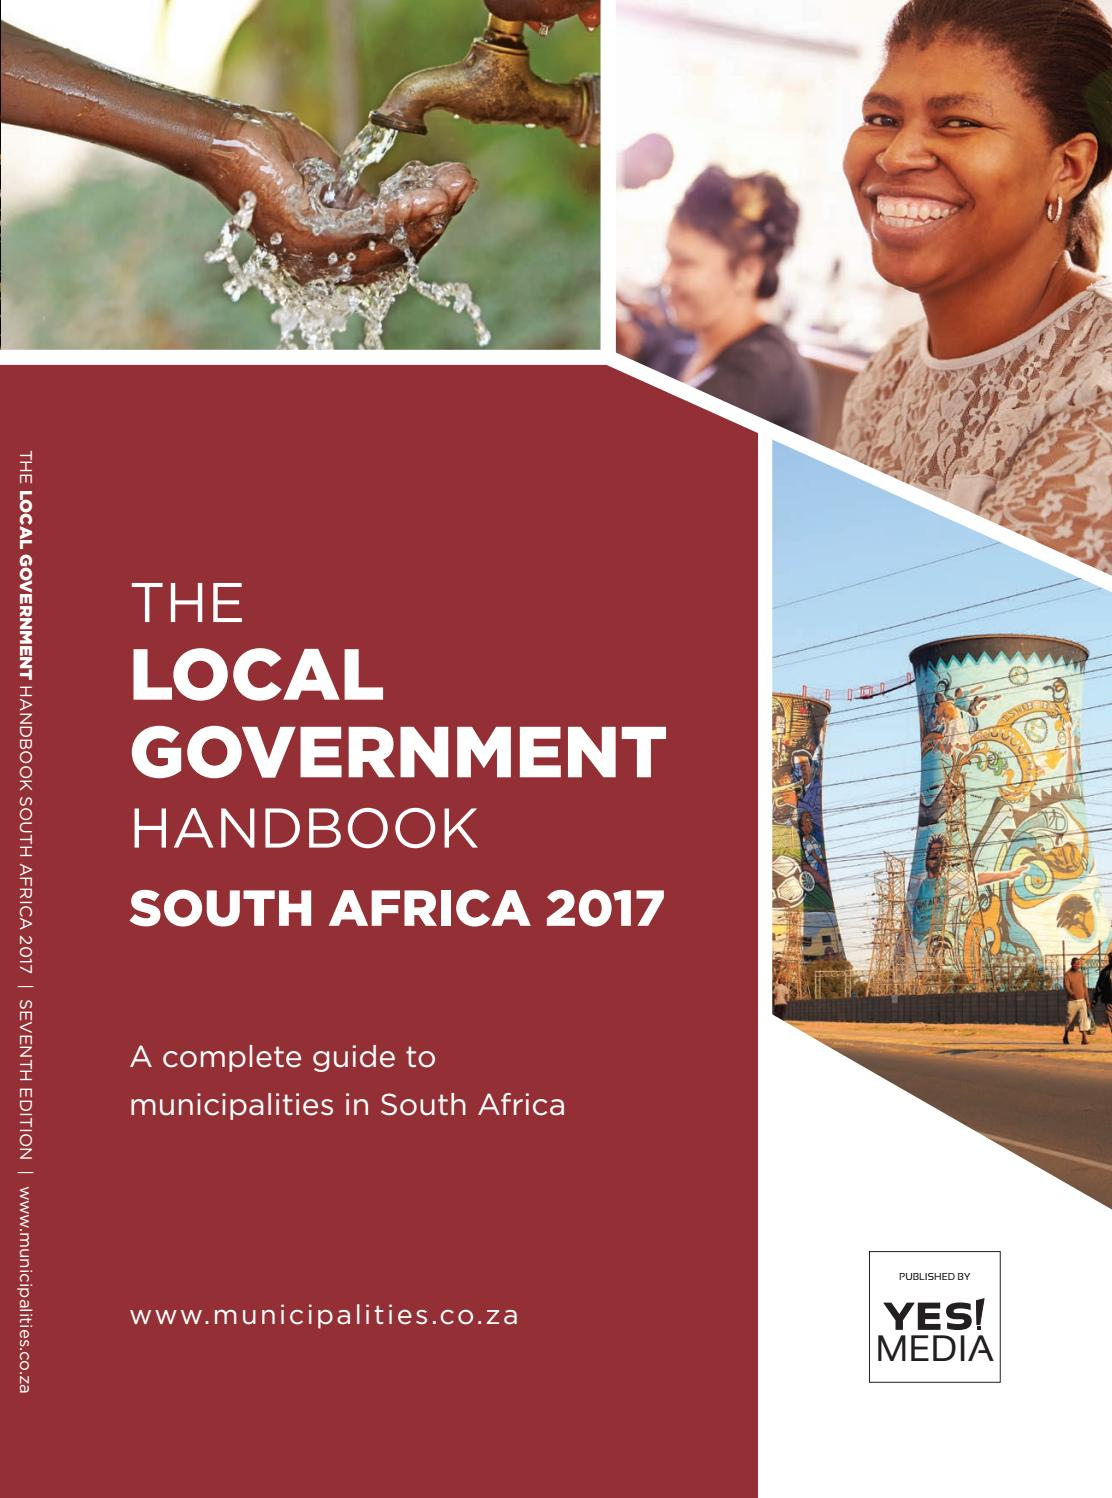 Local Government Handbook - South Africa 2017 by Yes Media